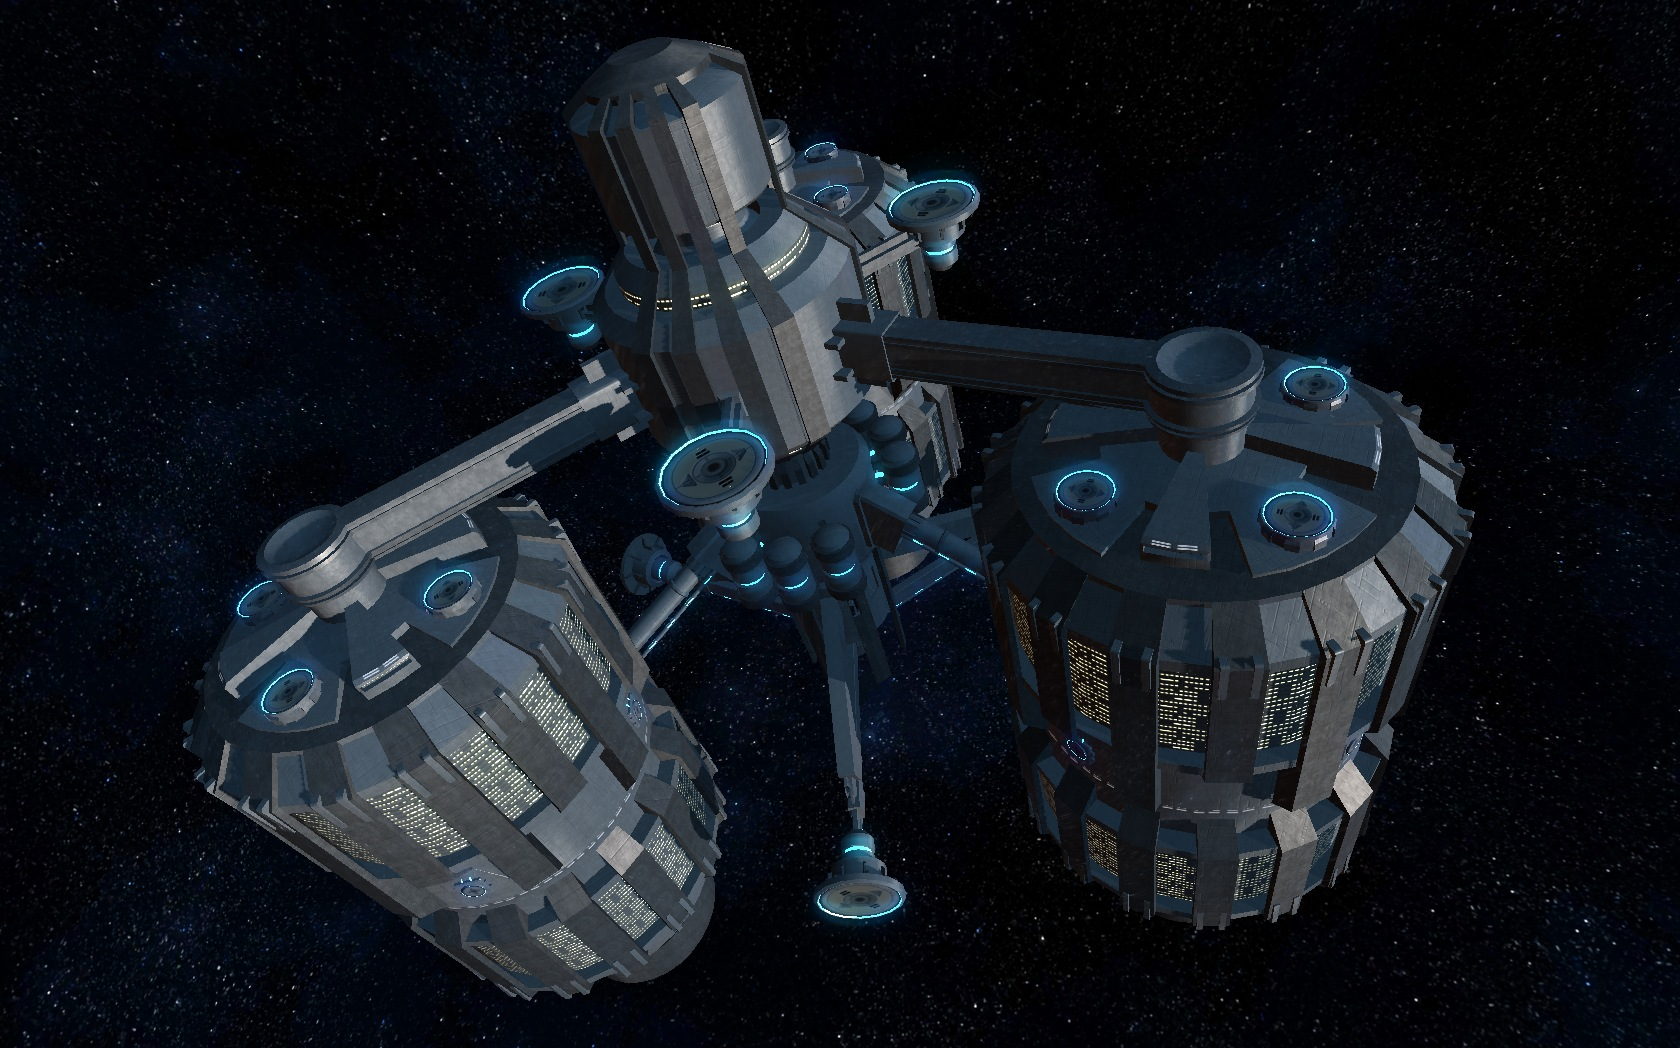 prison space station - photo #10